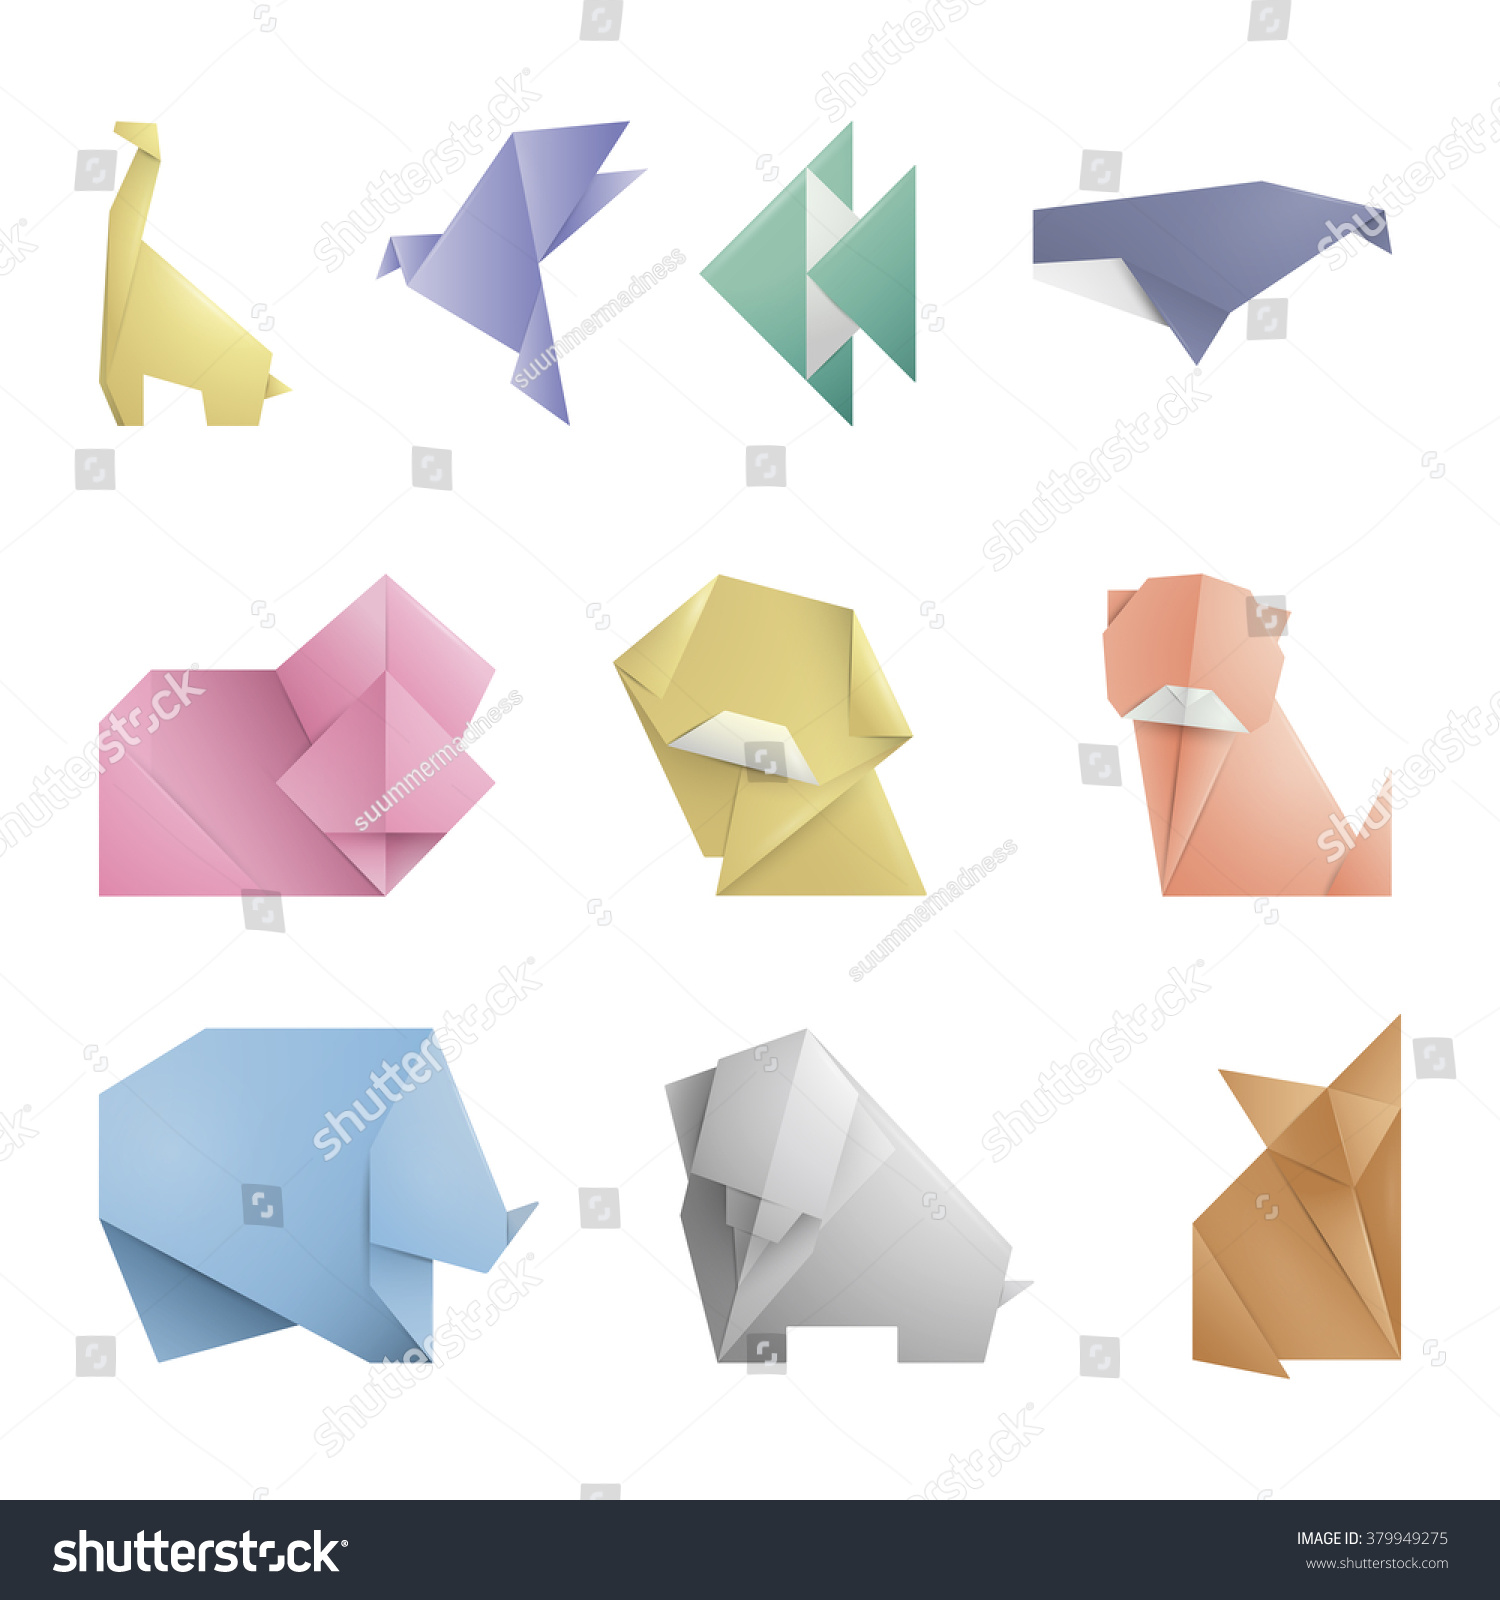 Collection Of 10 Simple Origami Symbol,Icon Of Animals ... - photo#50